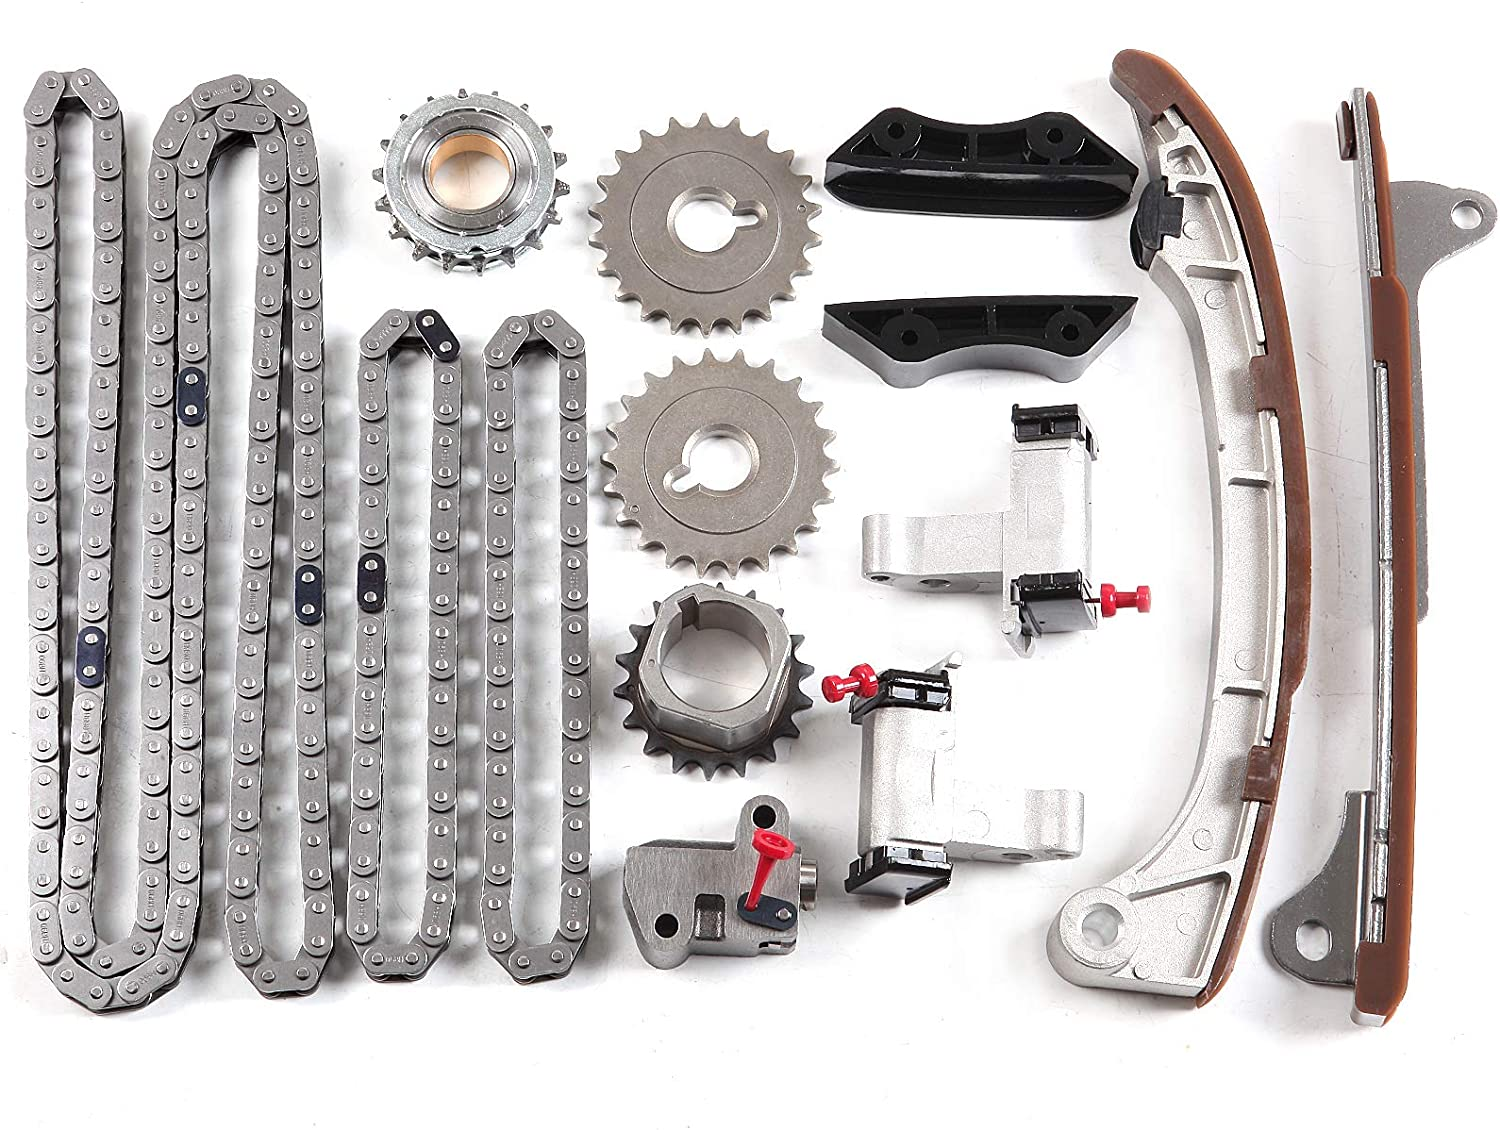 SCITOO Timing Chain Kit fits for 2003-2009 TKTO050 TKDG240A TK167 Toyota 4Runner Tundra 4.0L